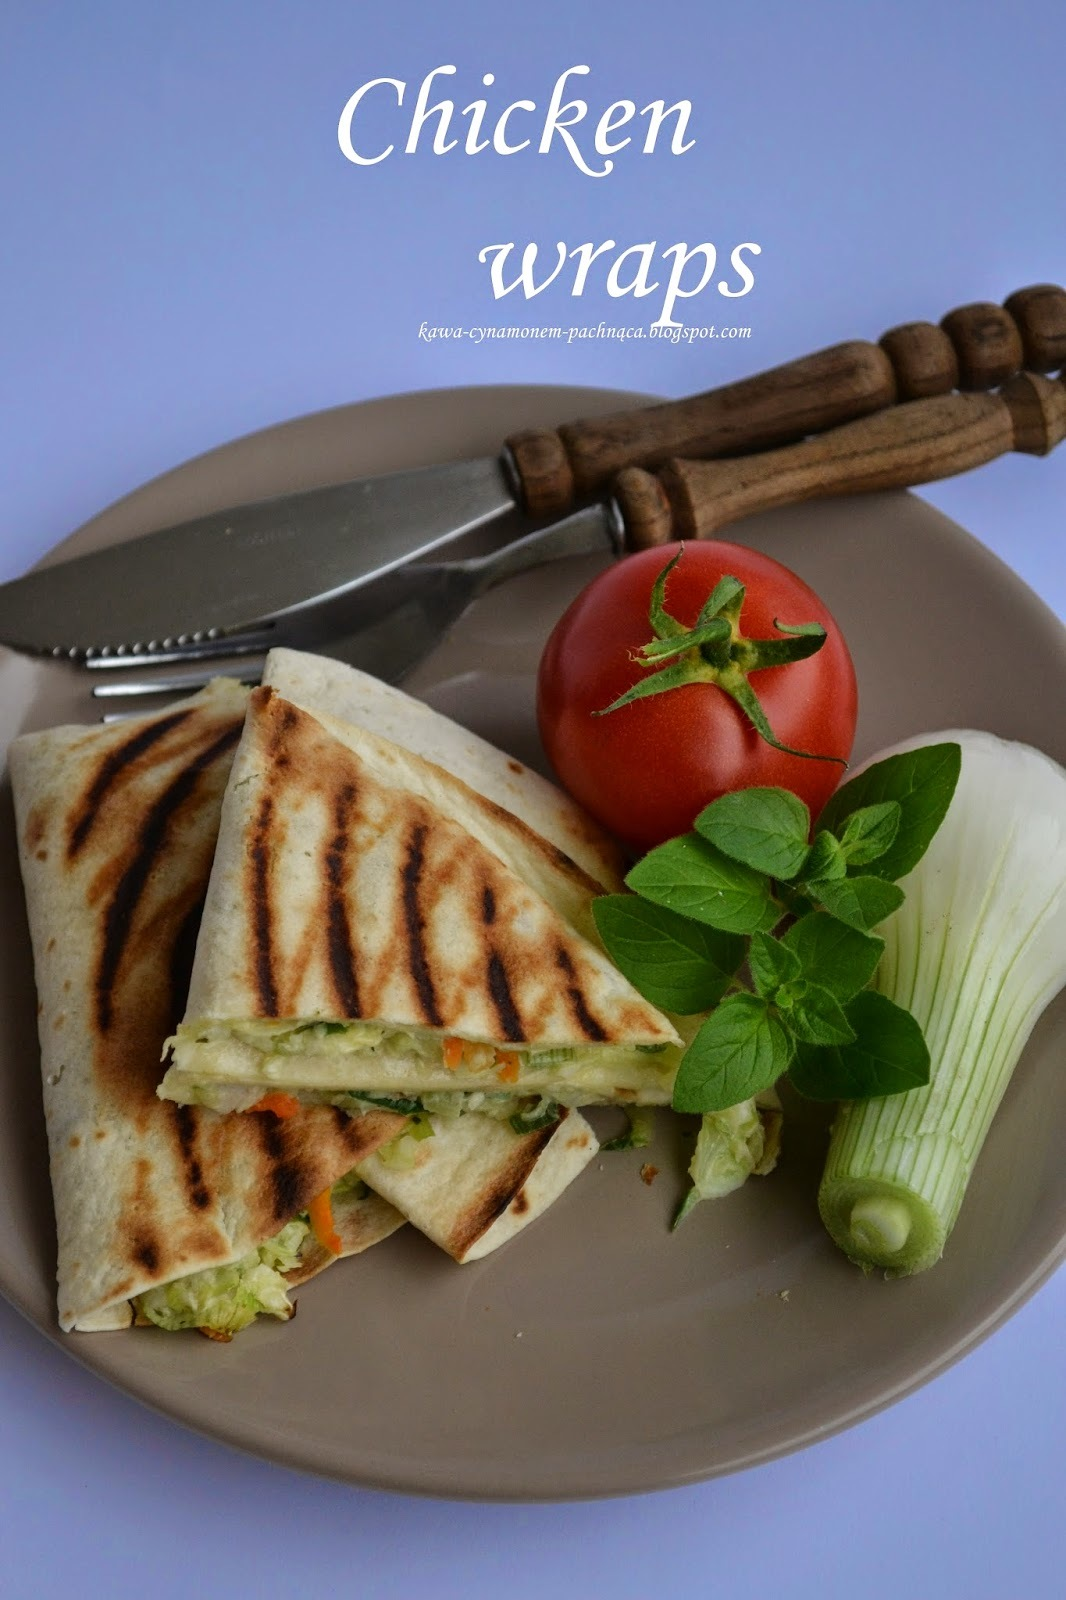 CHICKENS WRAPS